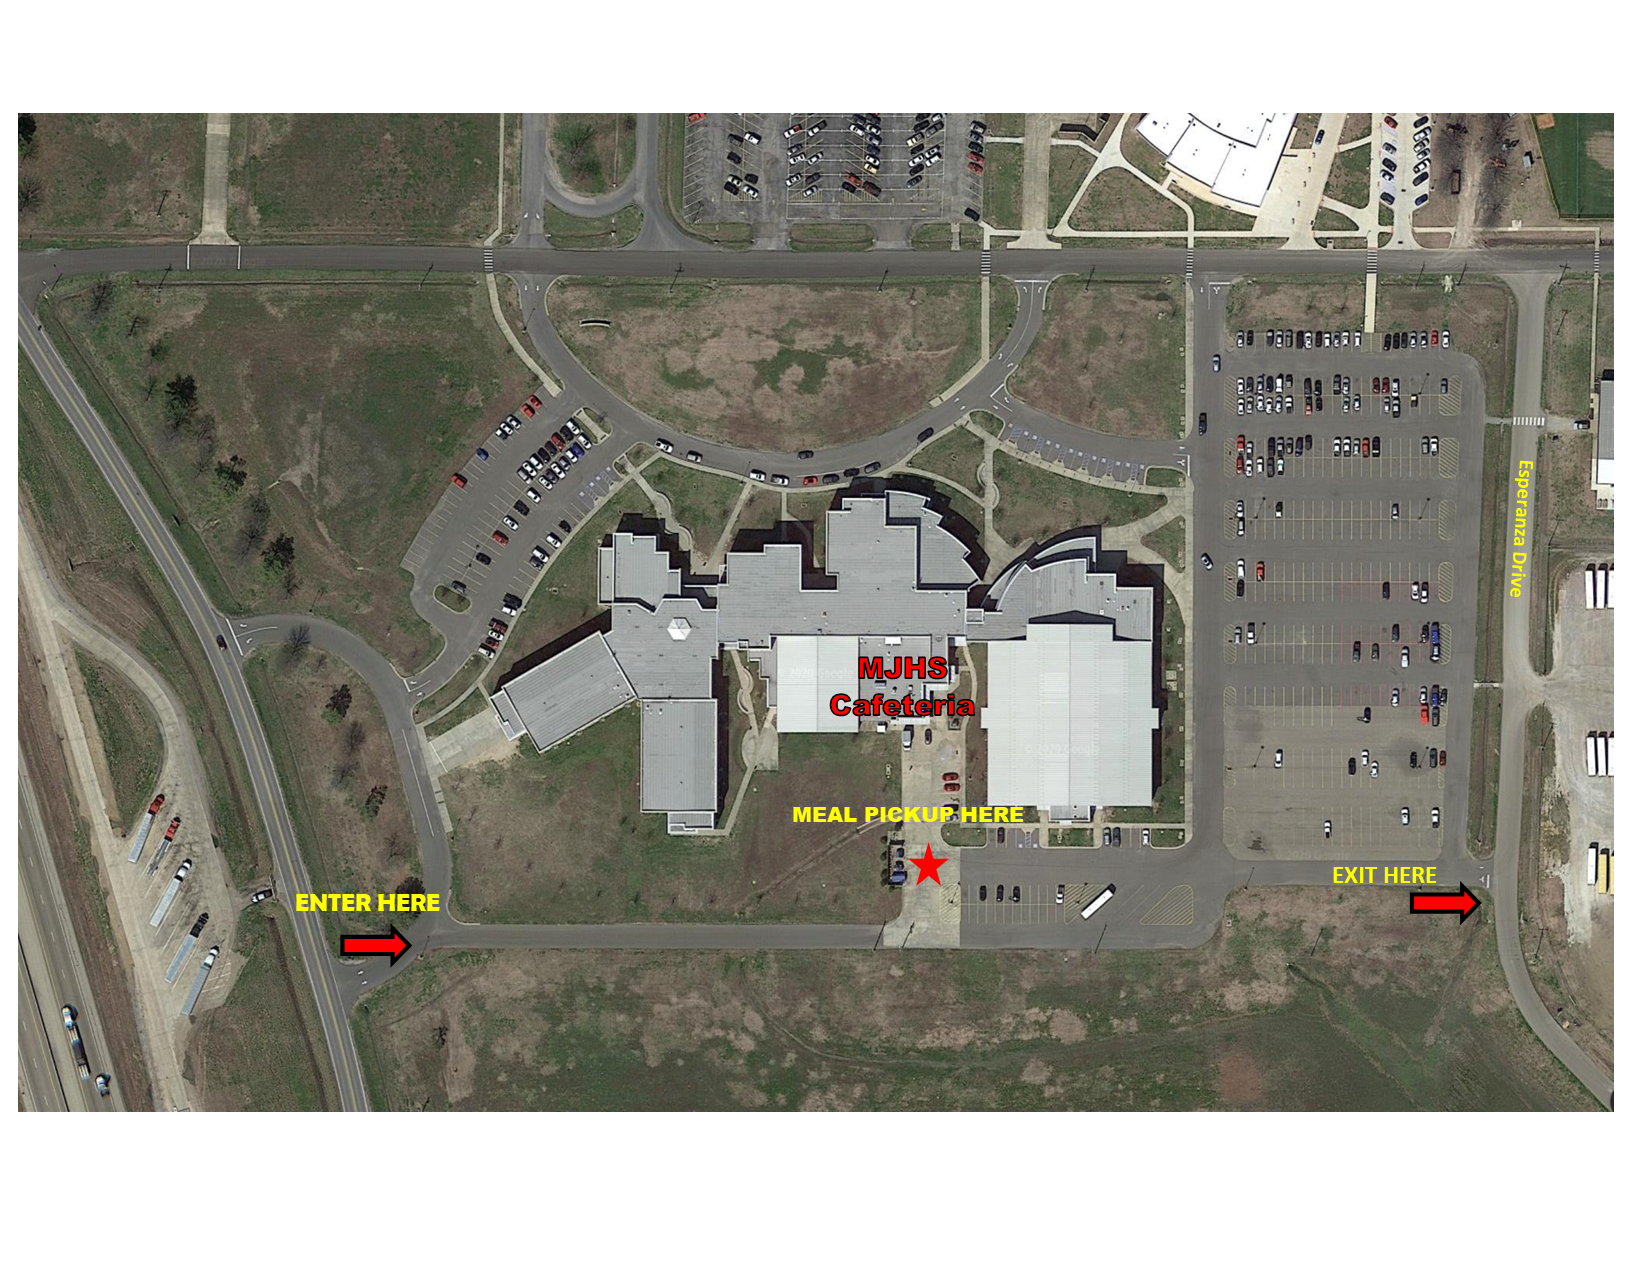 VIRTUAL LEARNING STUDENT MEAL PICKUP MAP FOR THE MJHS LOCATION